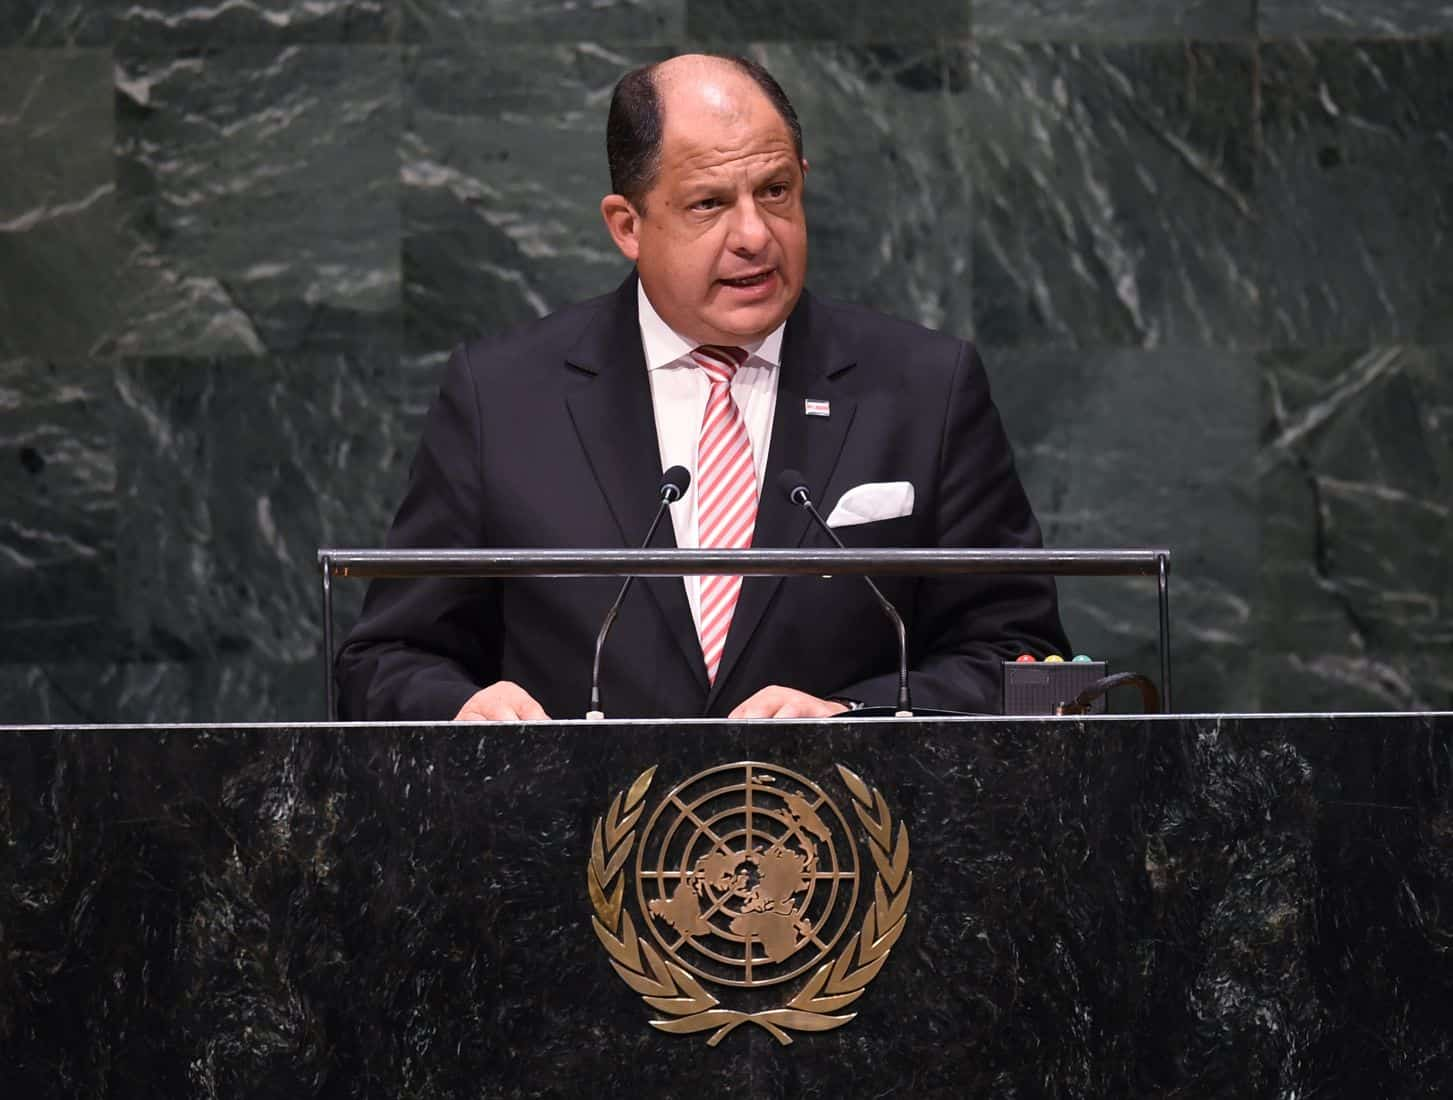 Costa Rican President Luis Guillermo Solís addresses the 69th session of the United Nations General Assembly.